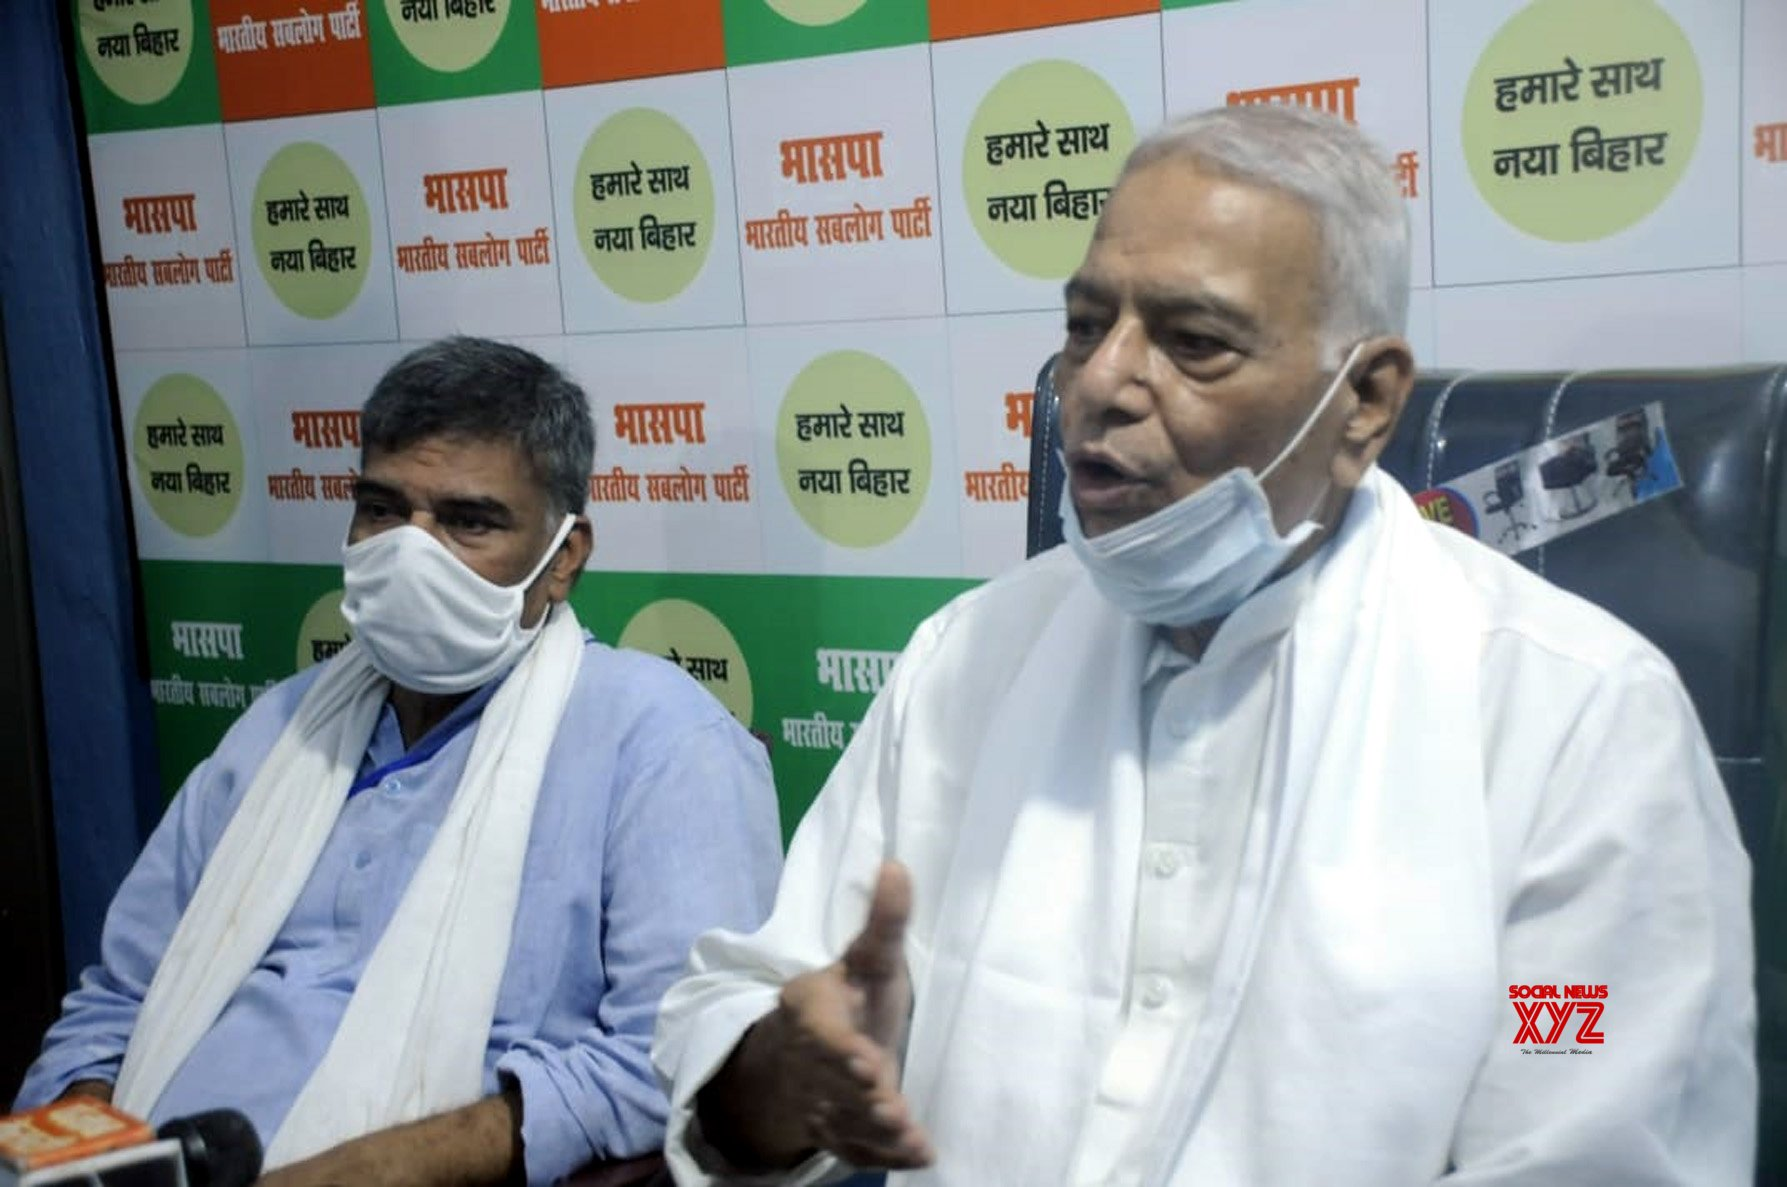 Patna: Yashwant Sinha's press conference #Gallery